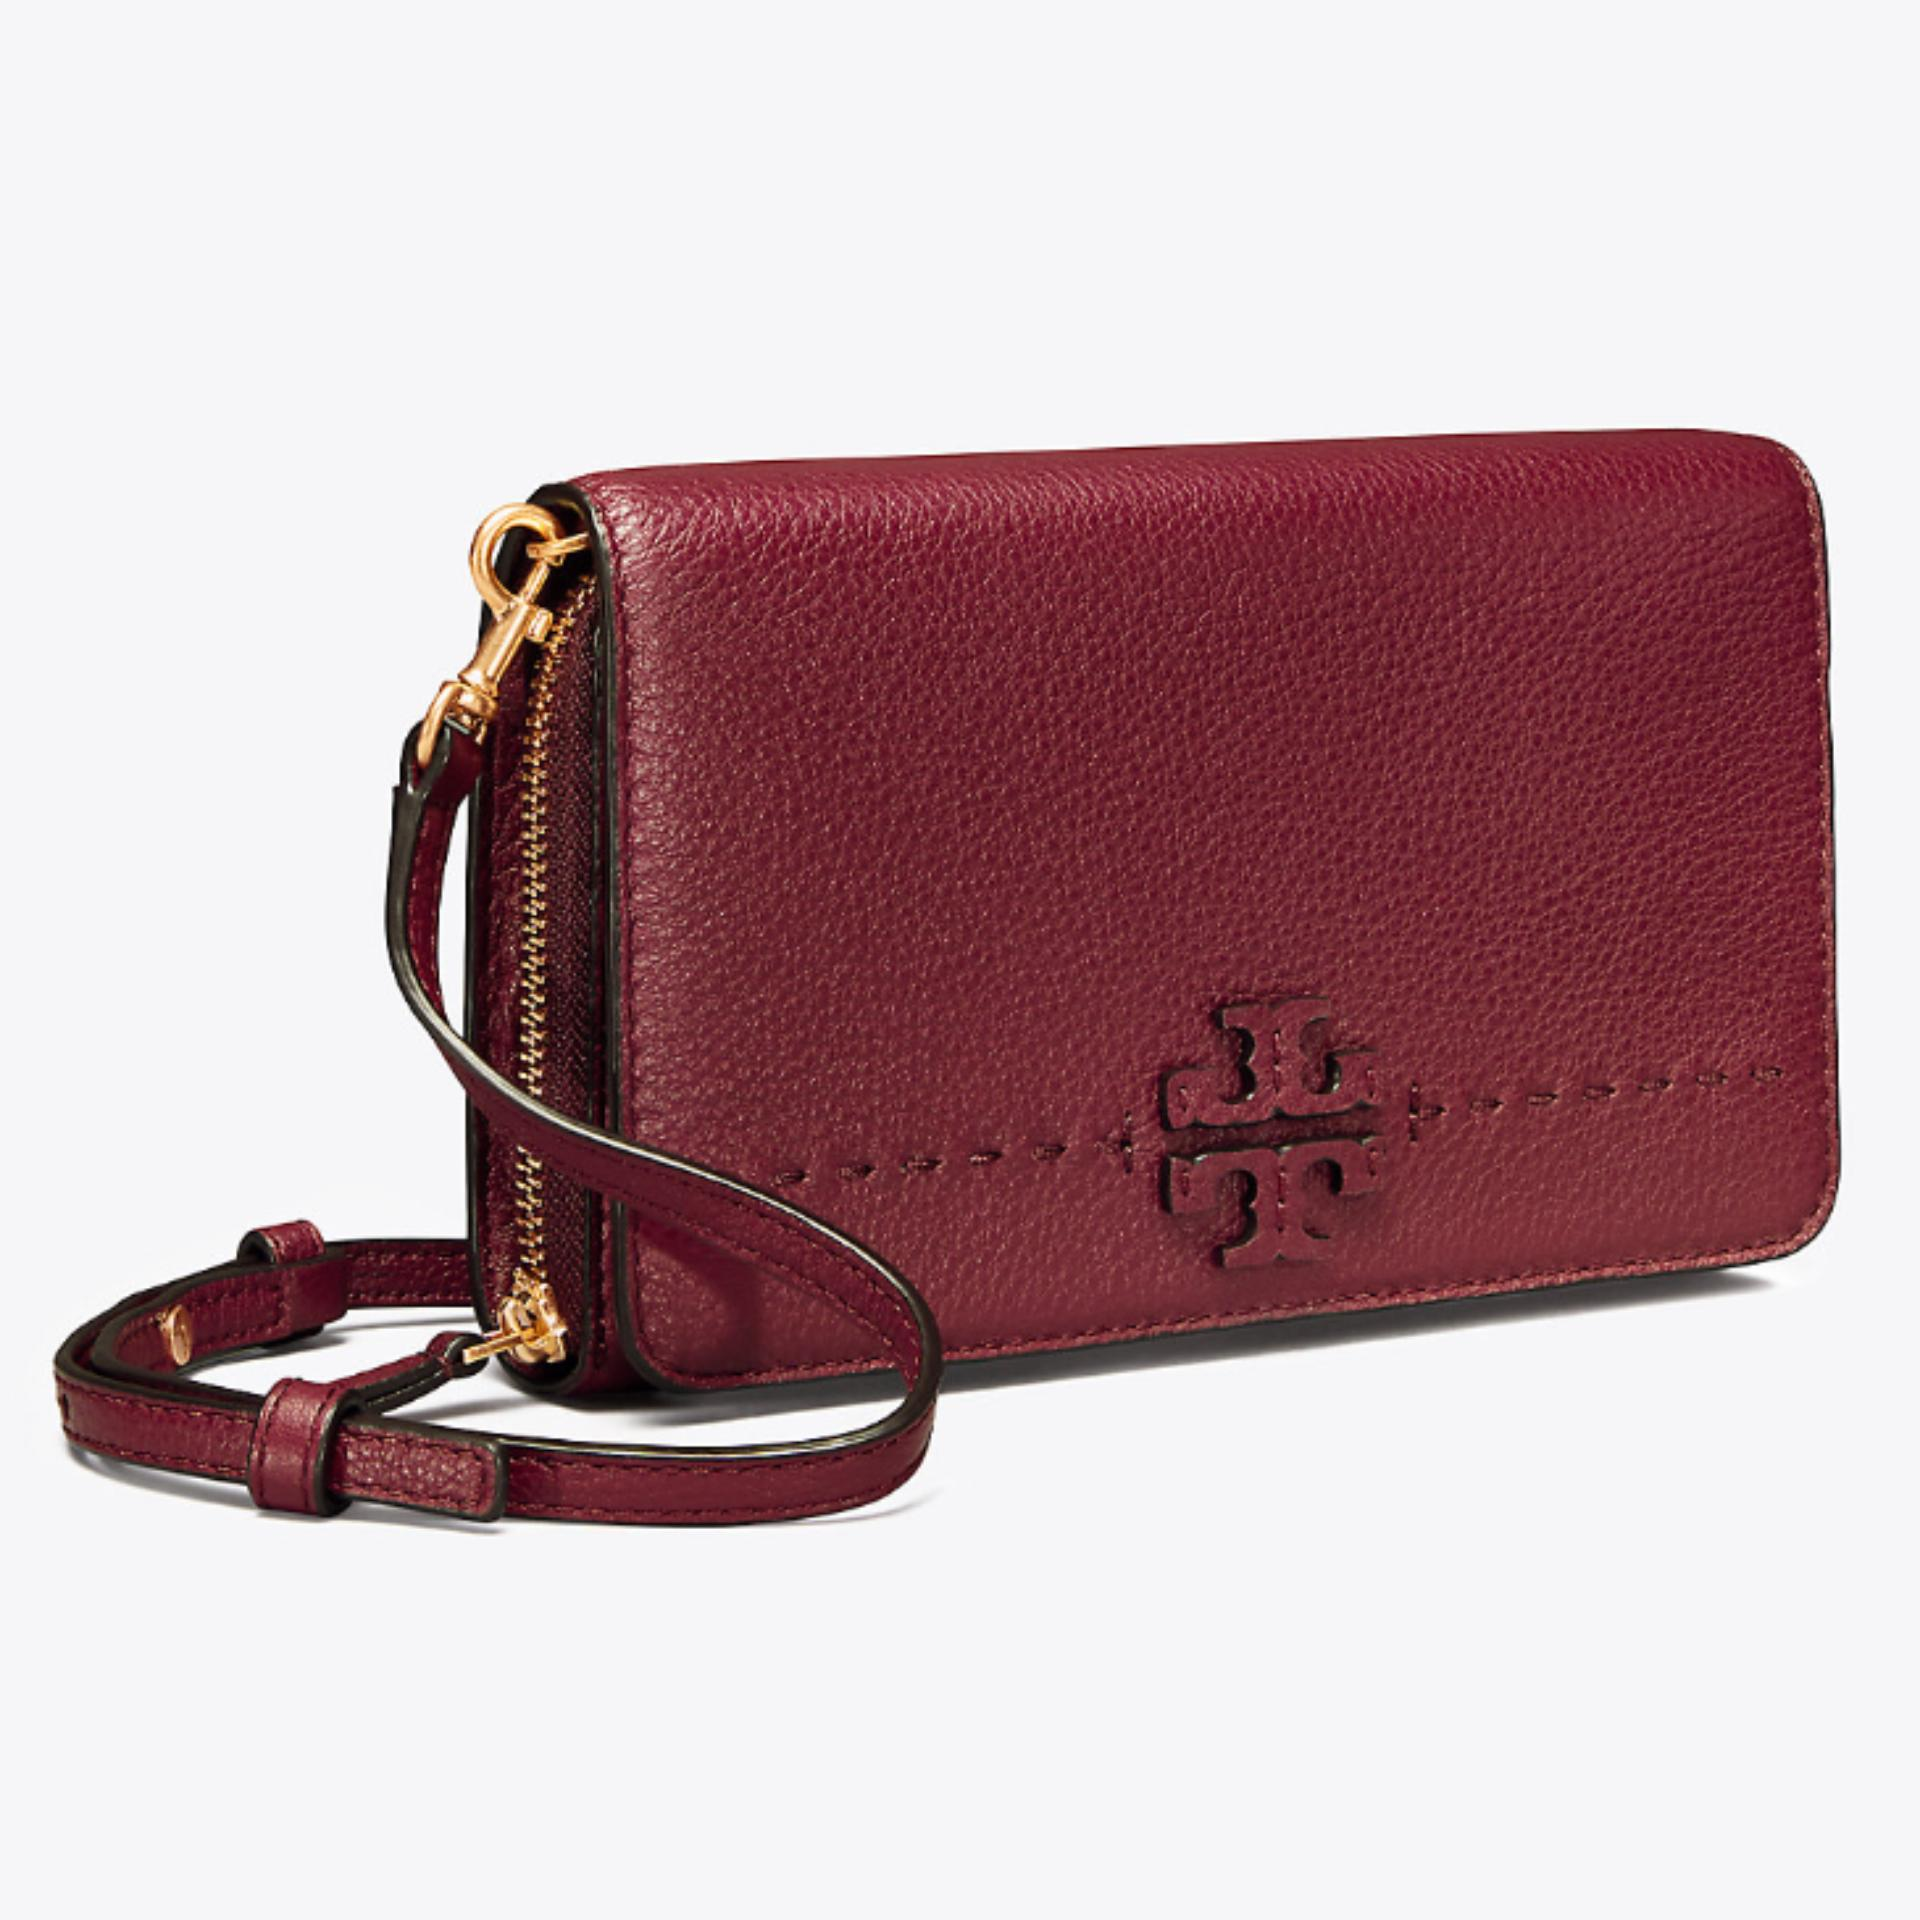 TORY BURCH McGRAW FLAT WALLET CROSS-BODY (IMPERIAL GARNET)